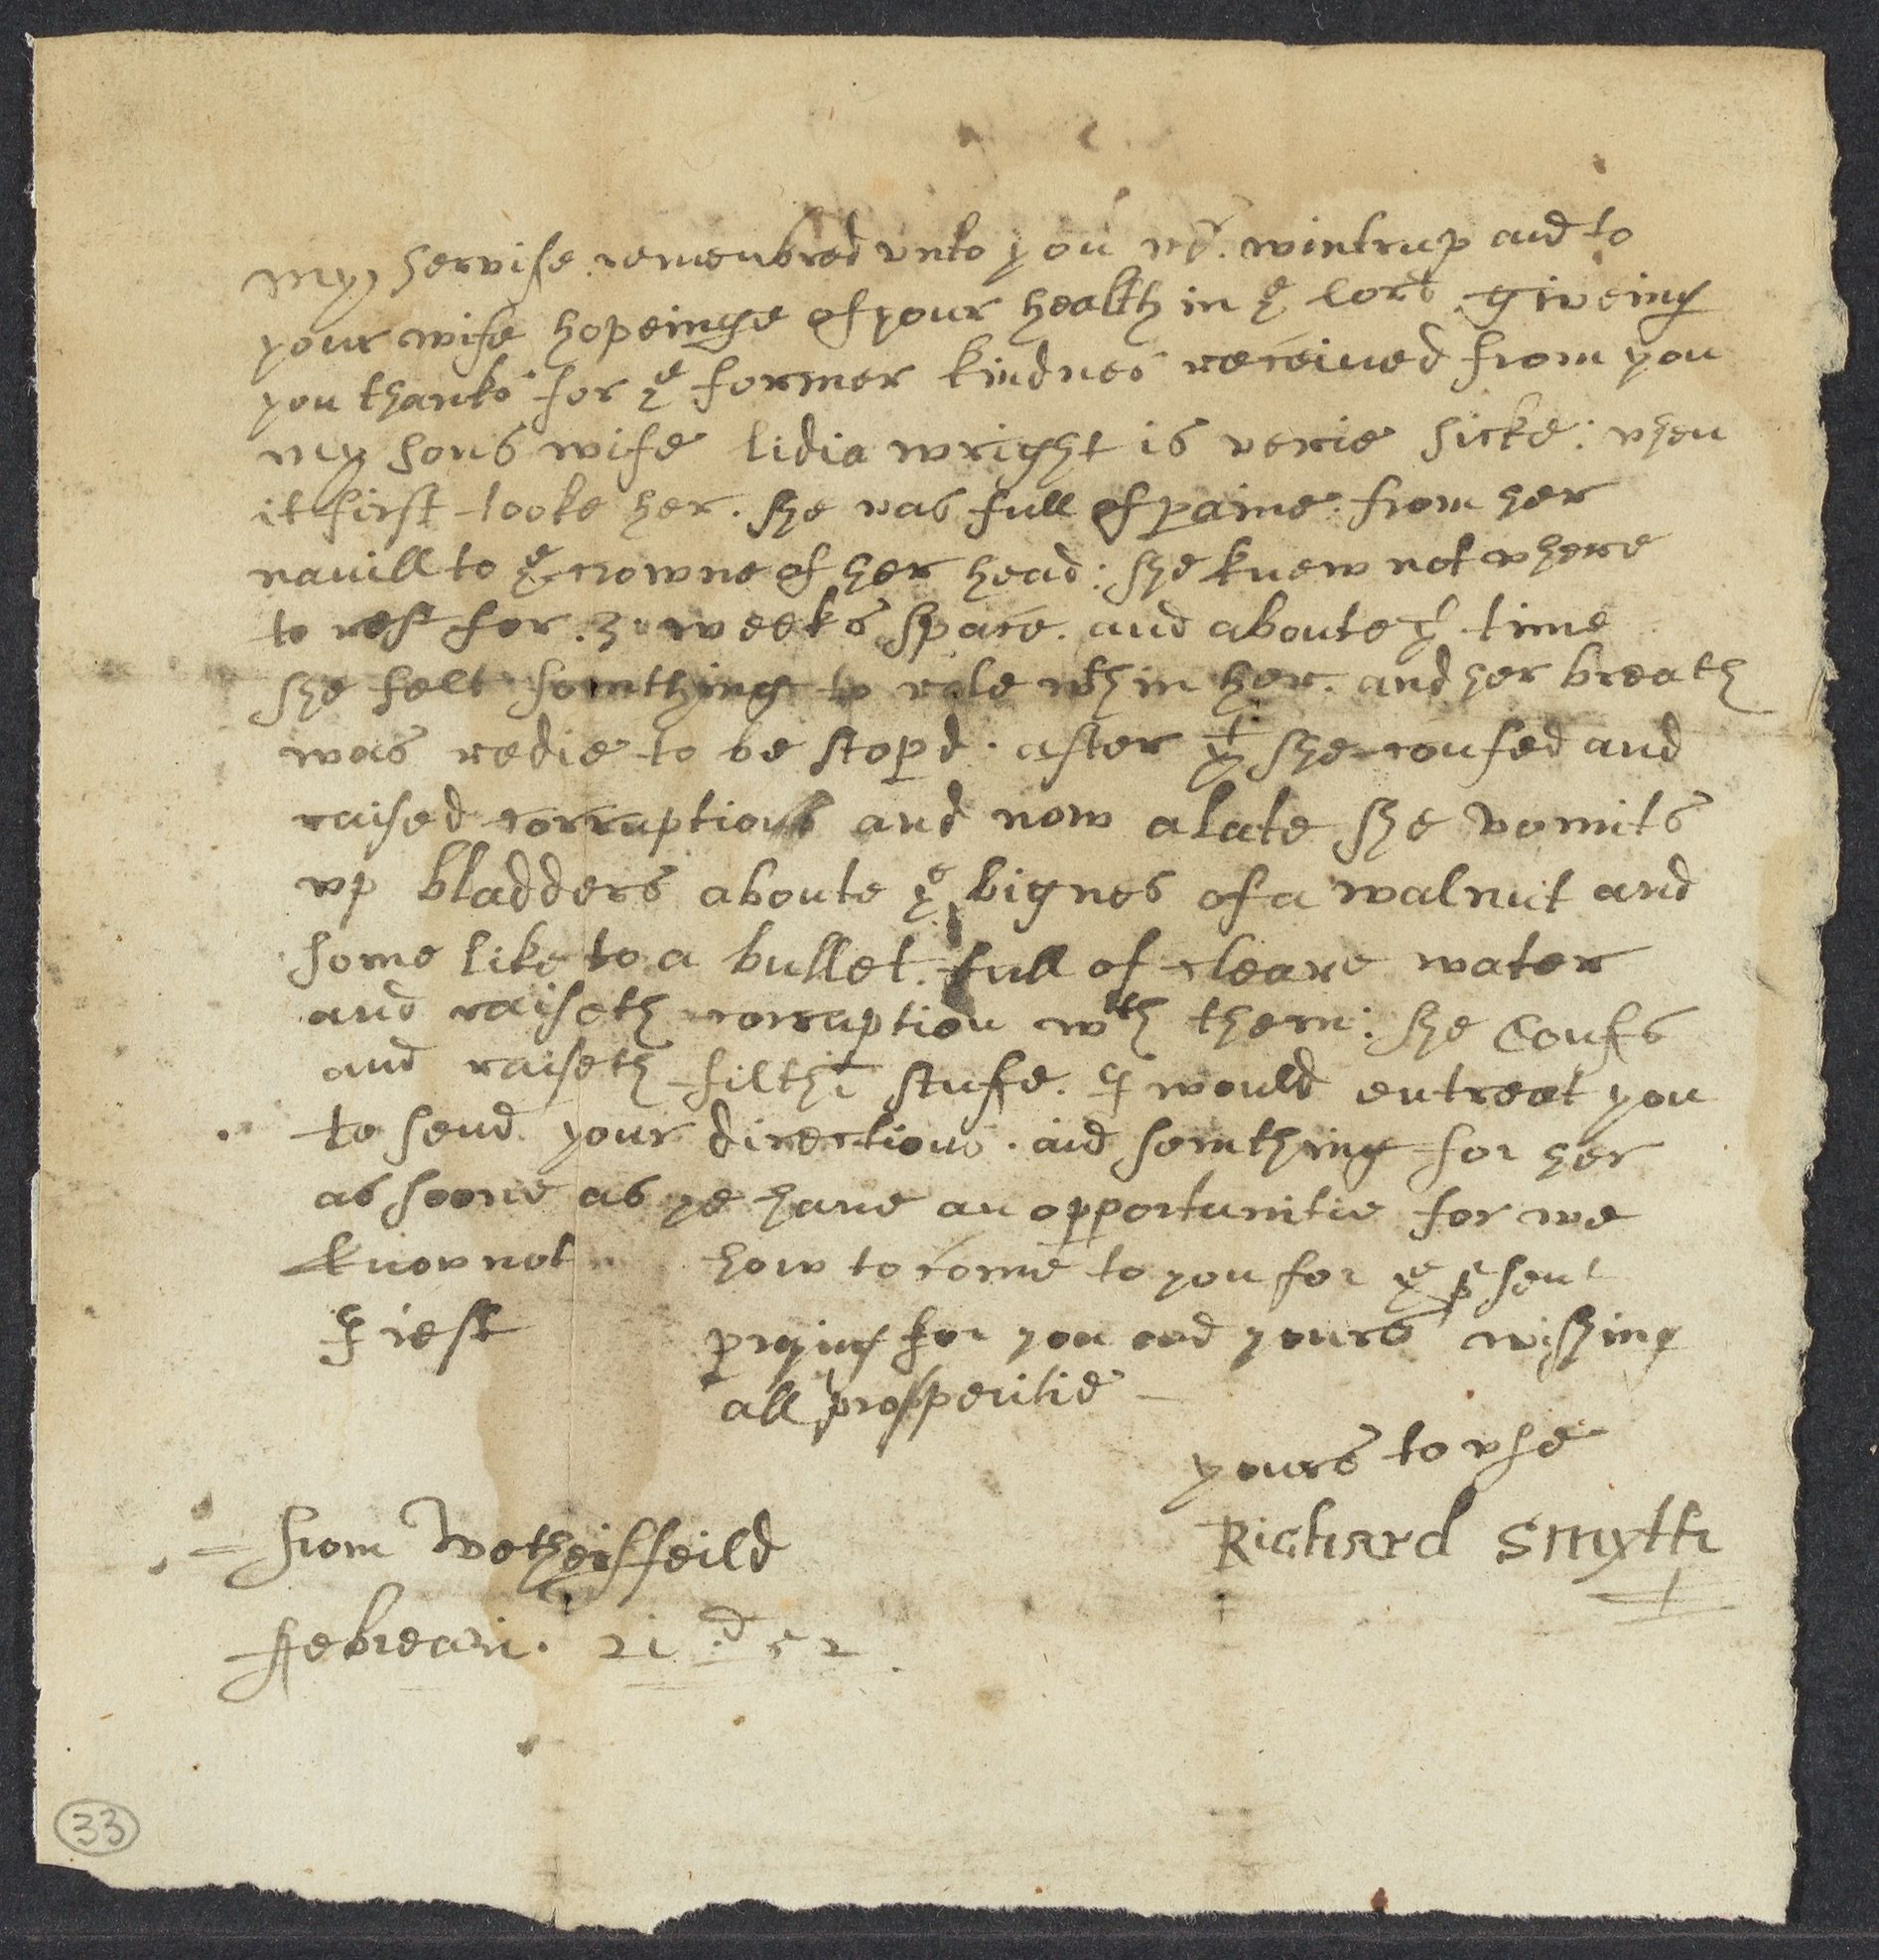 Smyth, Richard, autographed letter signed to John Winthrop; Wethersfeild [sic], Conn., 1 side (2 pages), 1652 February 21